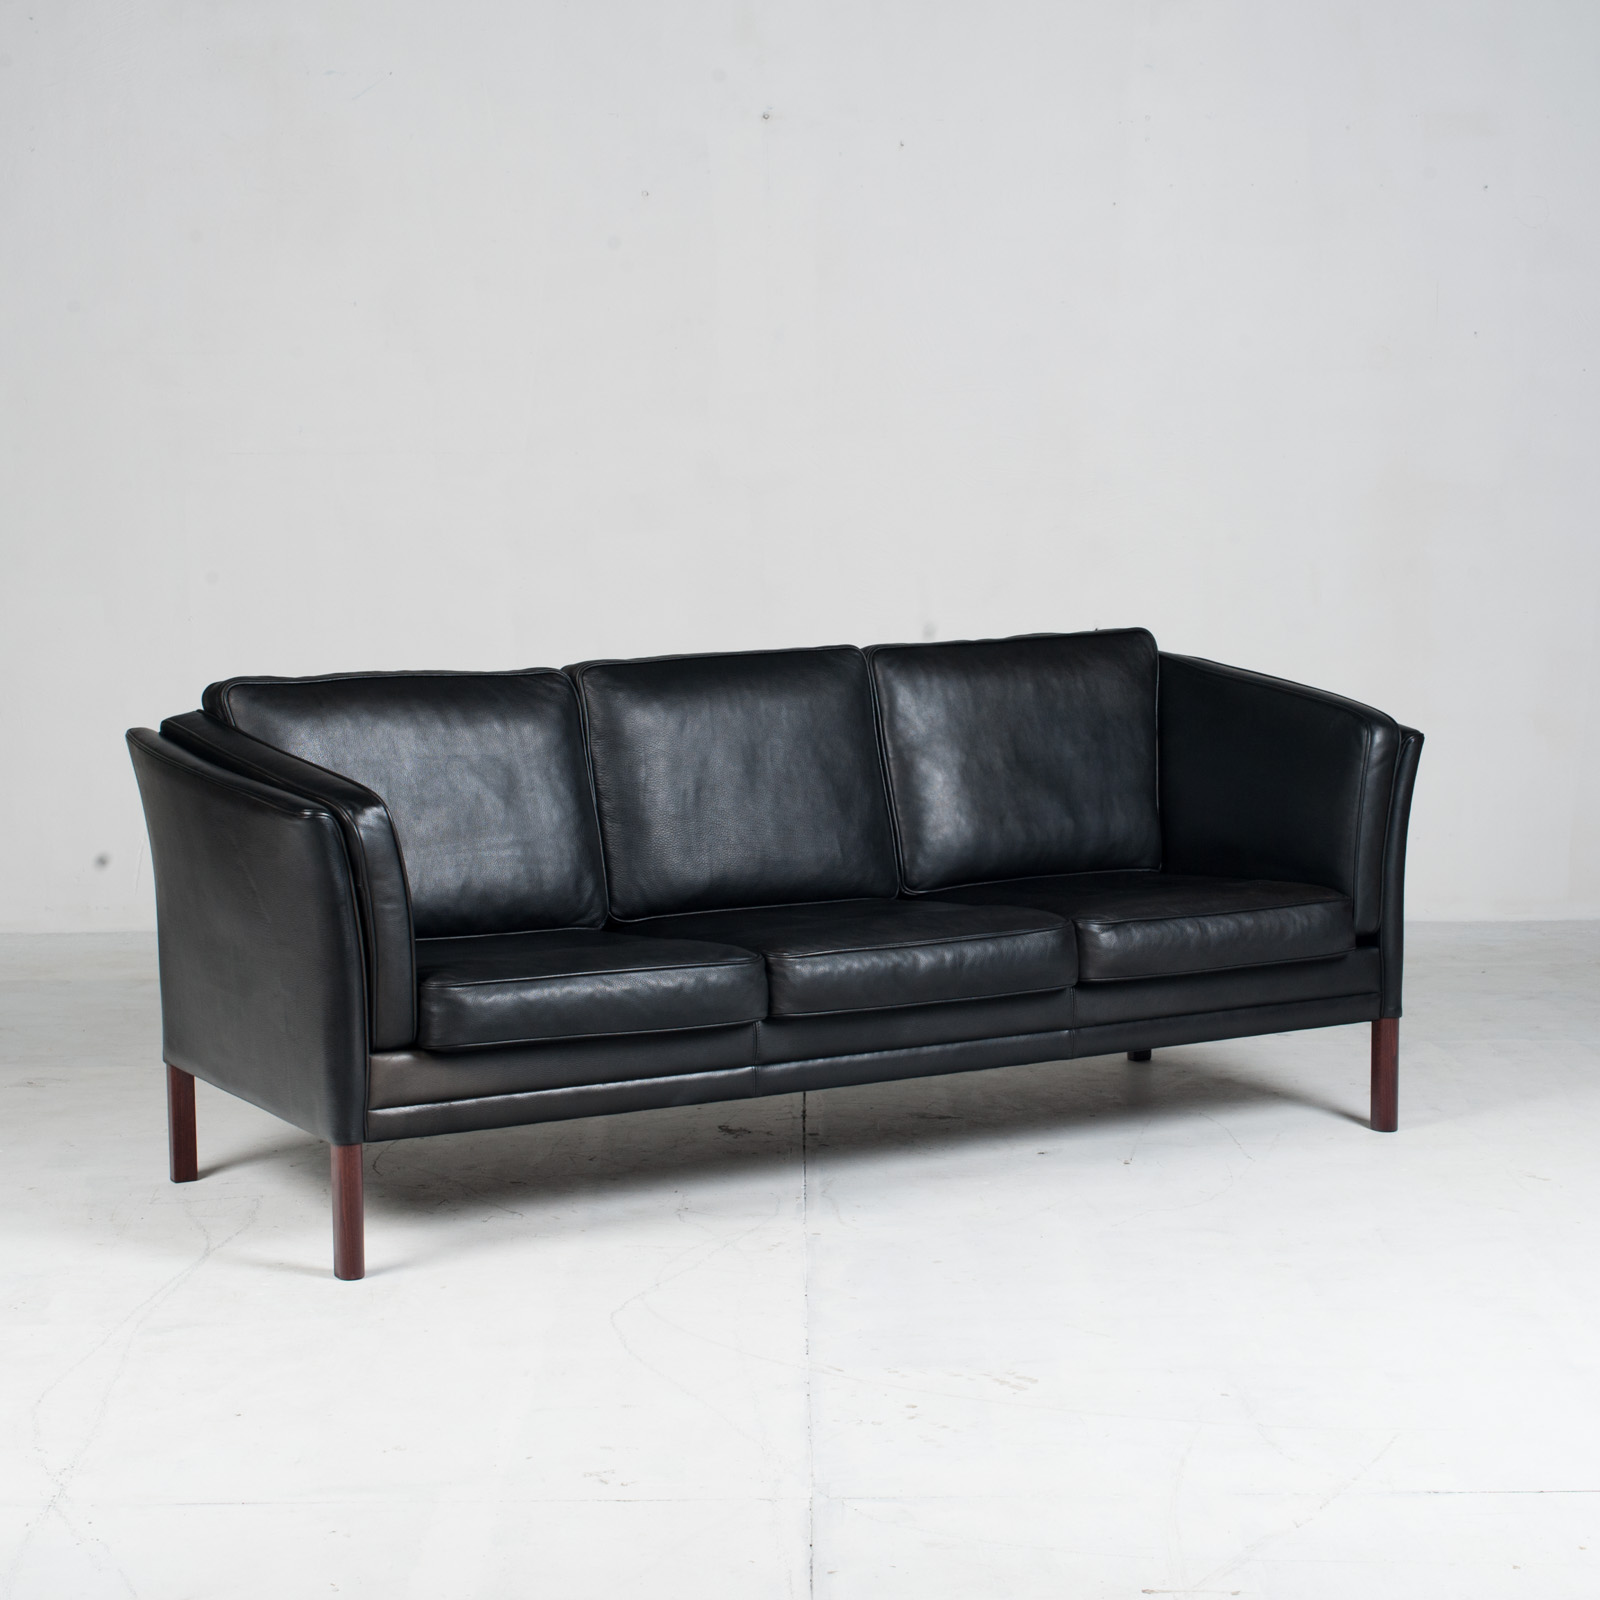 3 Seat Sofa In Black Aniline Leather 1960s Denmark 02